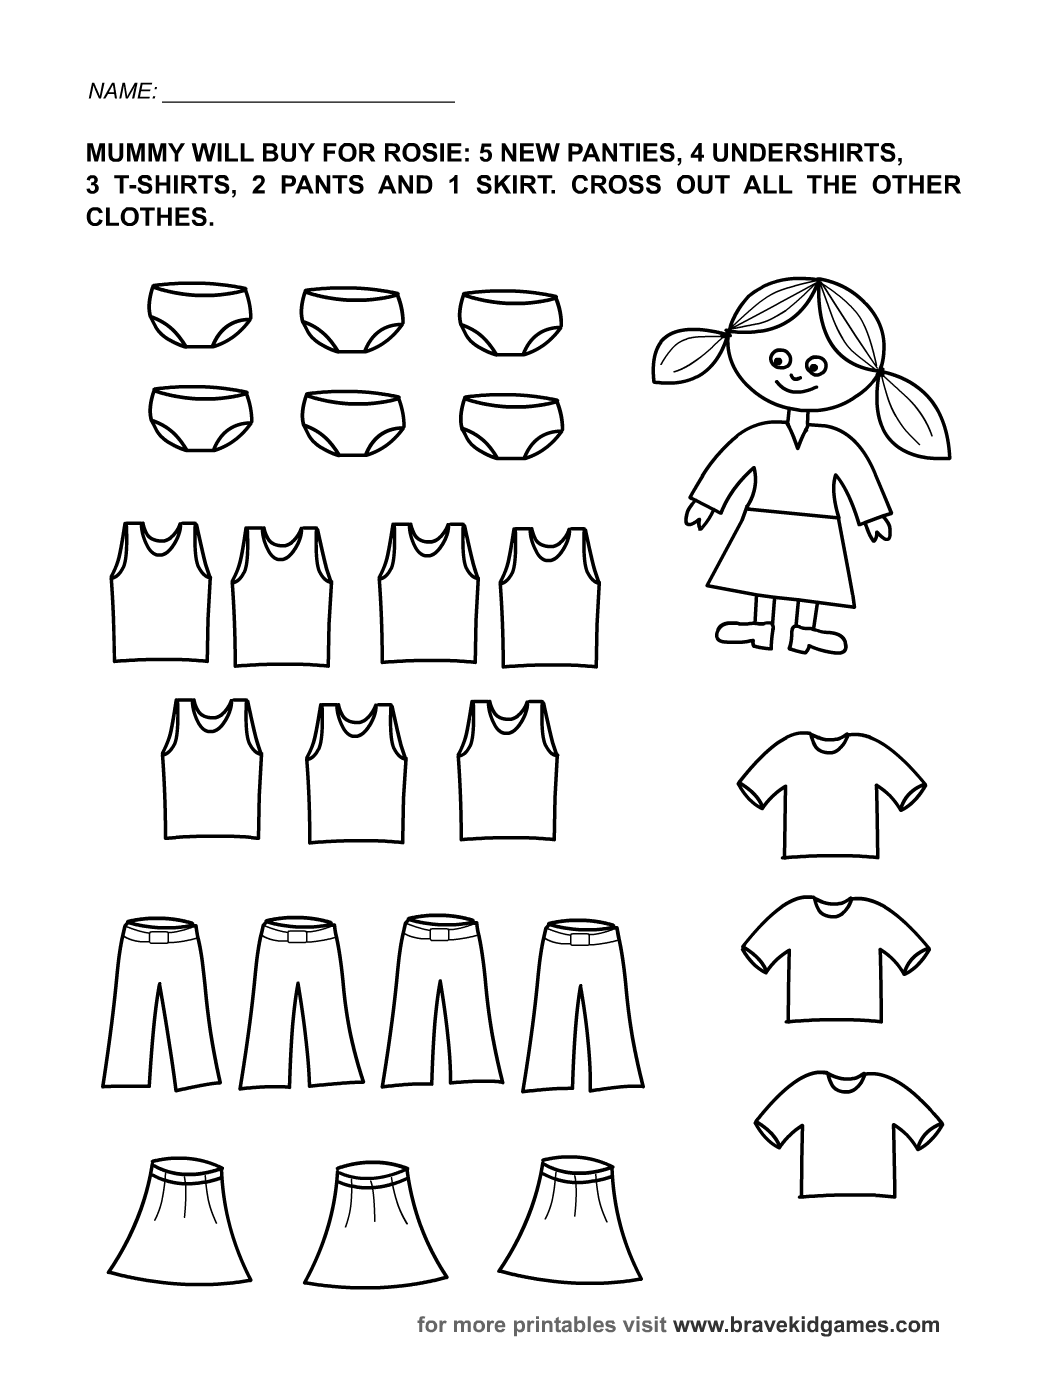 worksheet Kid Worksheets 1000 images about toddler worksheets on pinterest alphabet preschool and preschool